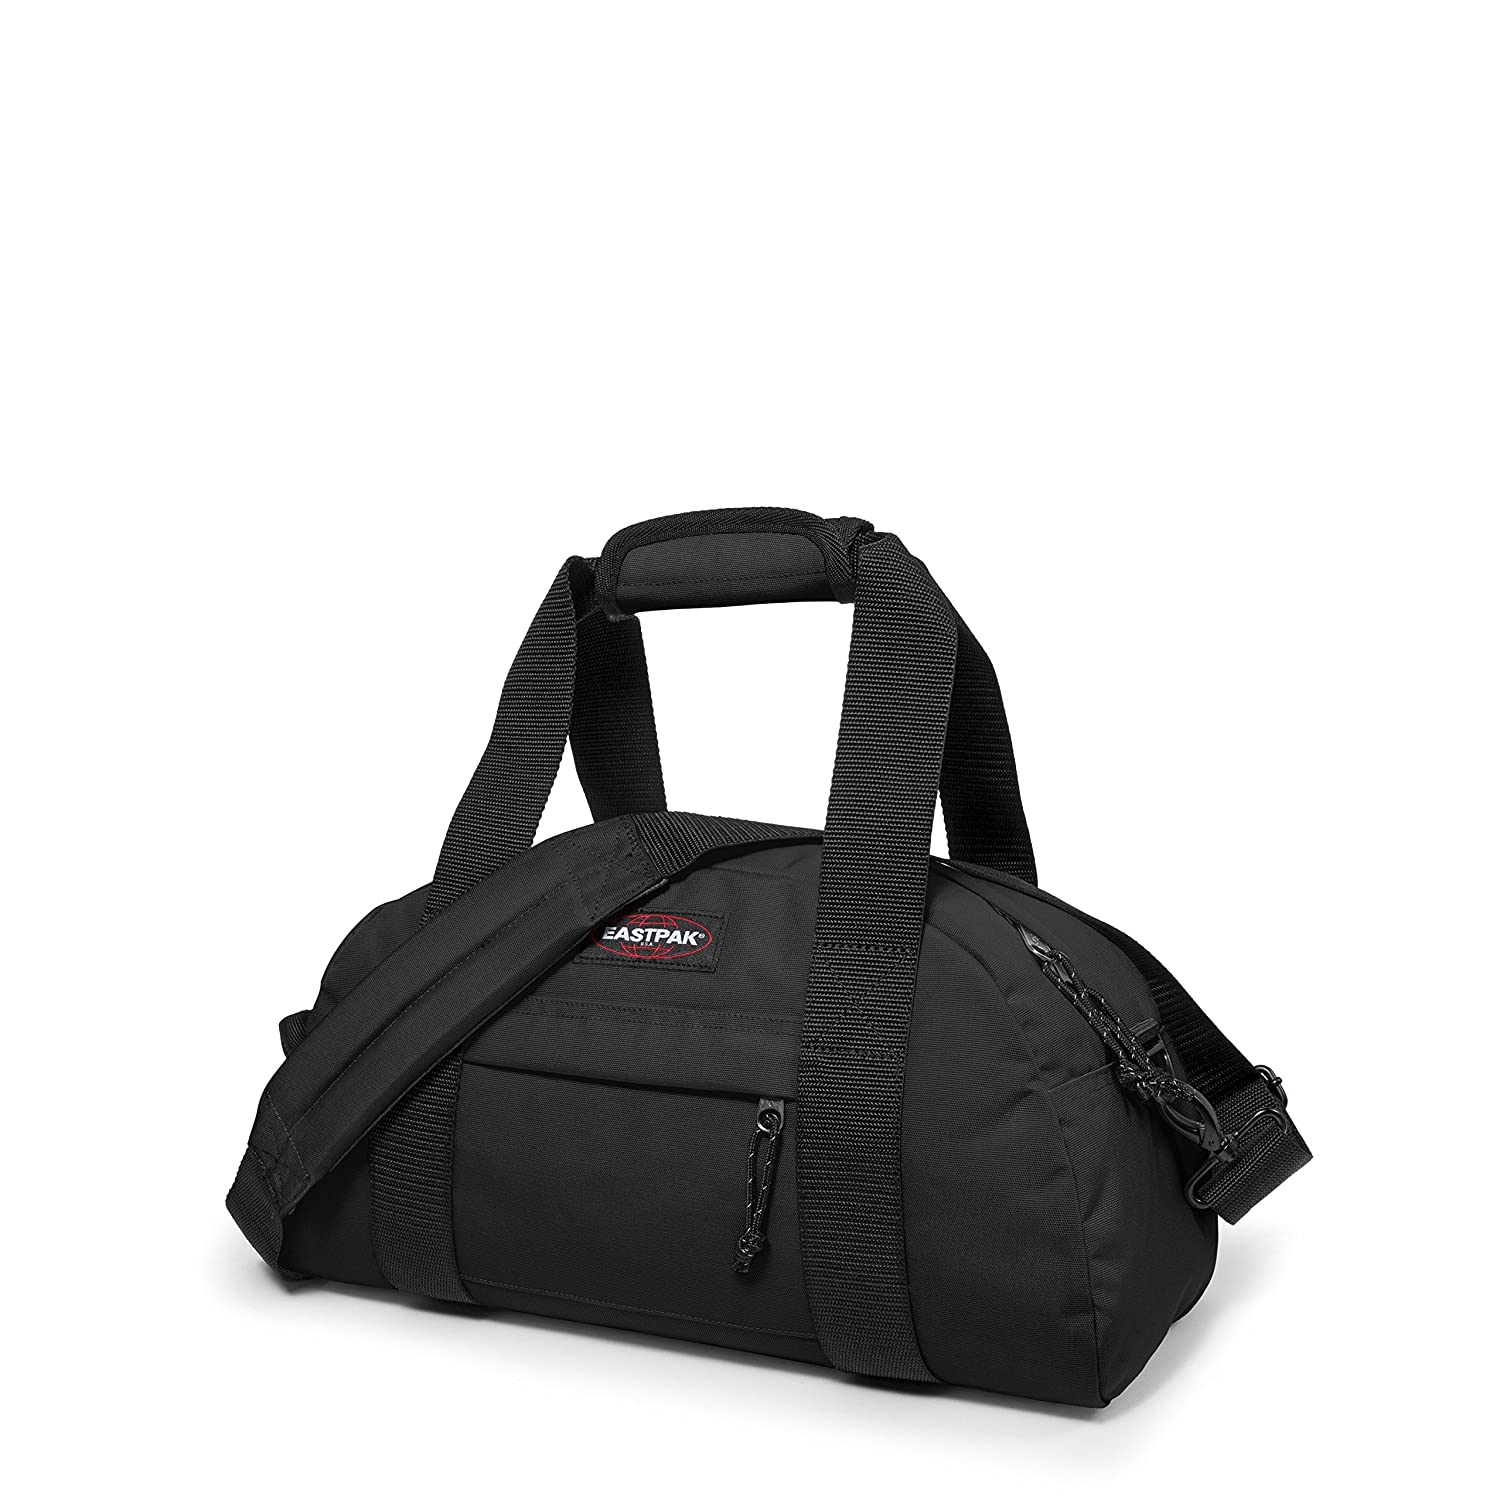 7423137897 Amazon.com: Eastpak Unisex Adult Compact Top Handle Bag: Sports & Outdoors